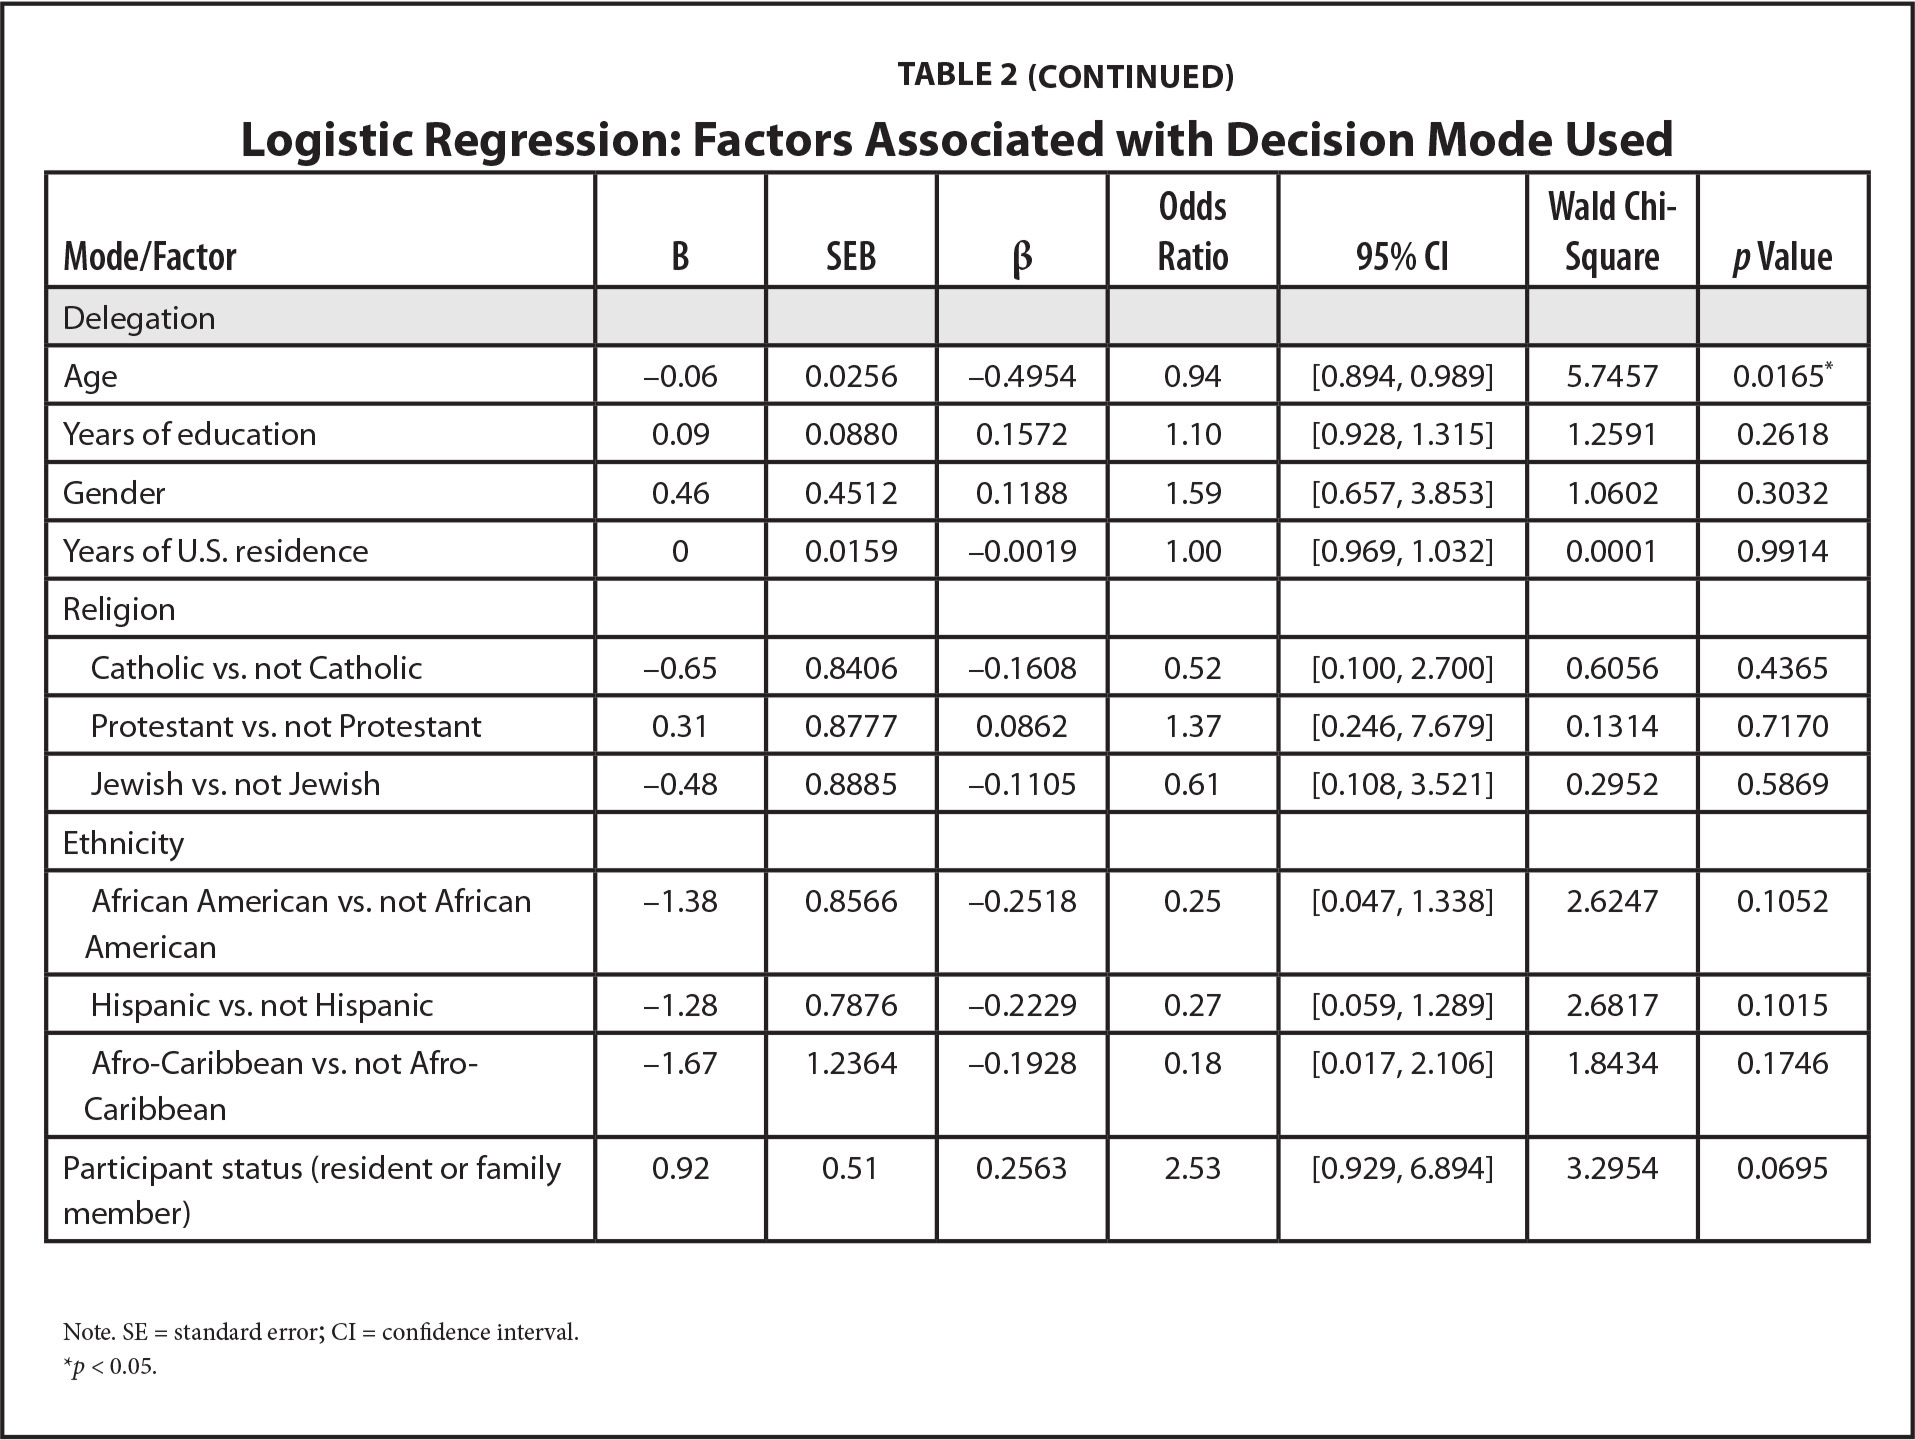 Logistic Regression: Factors Associated with Decision Mode Used